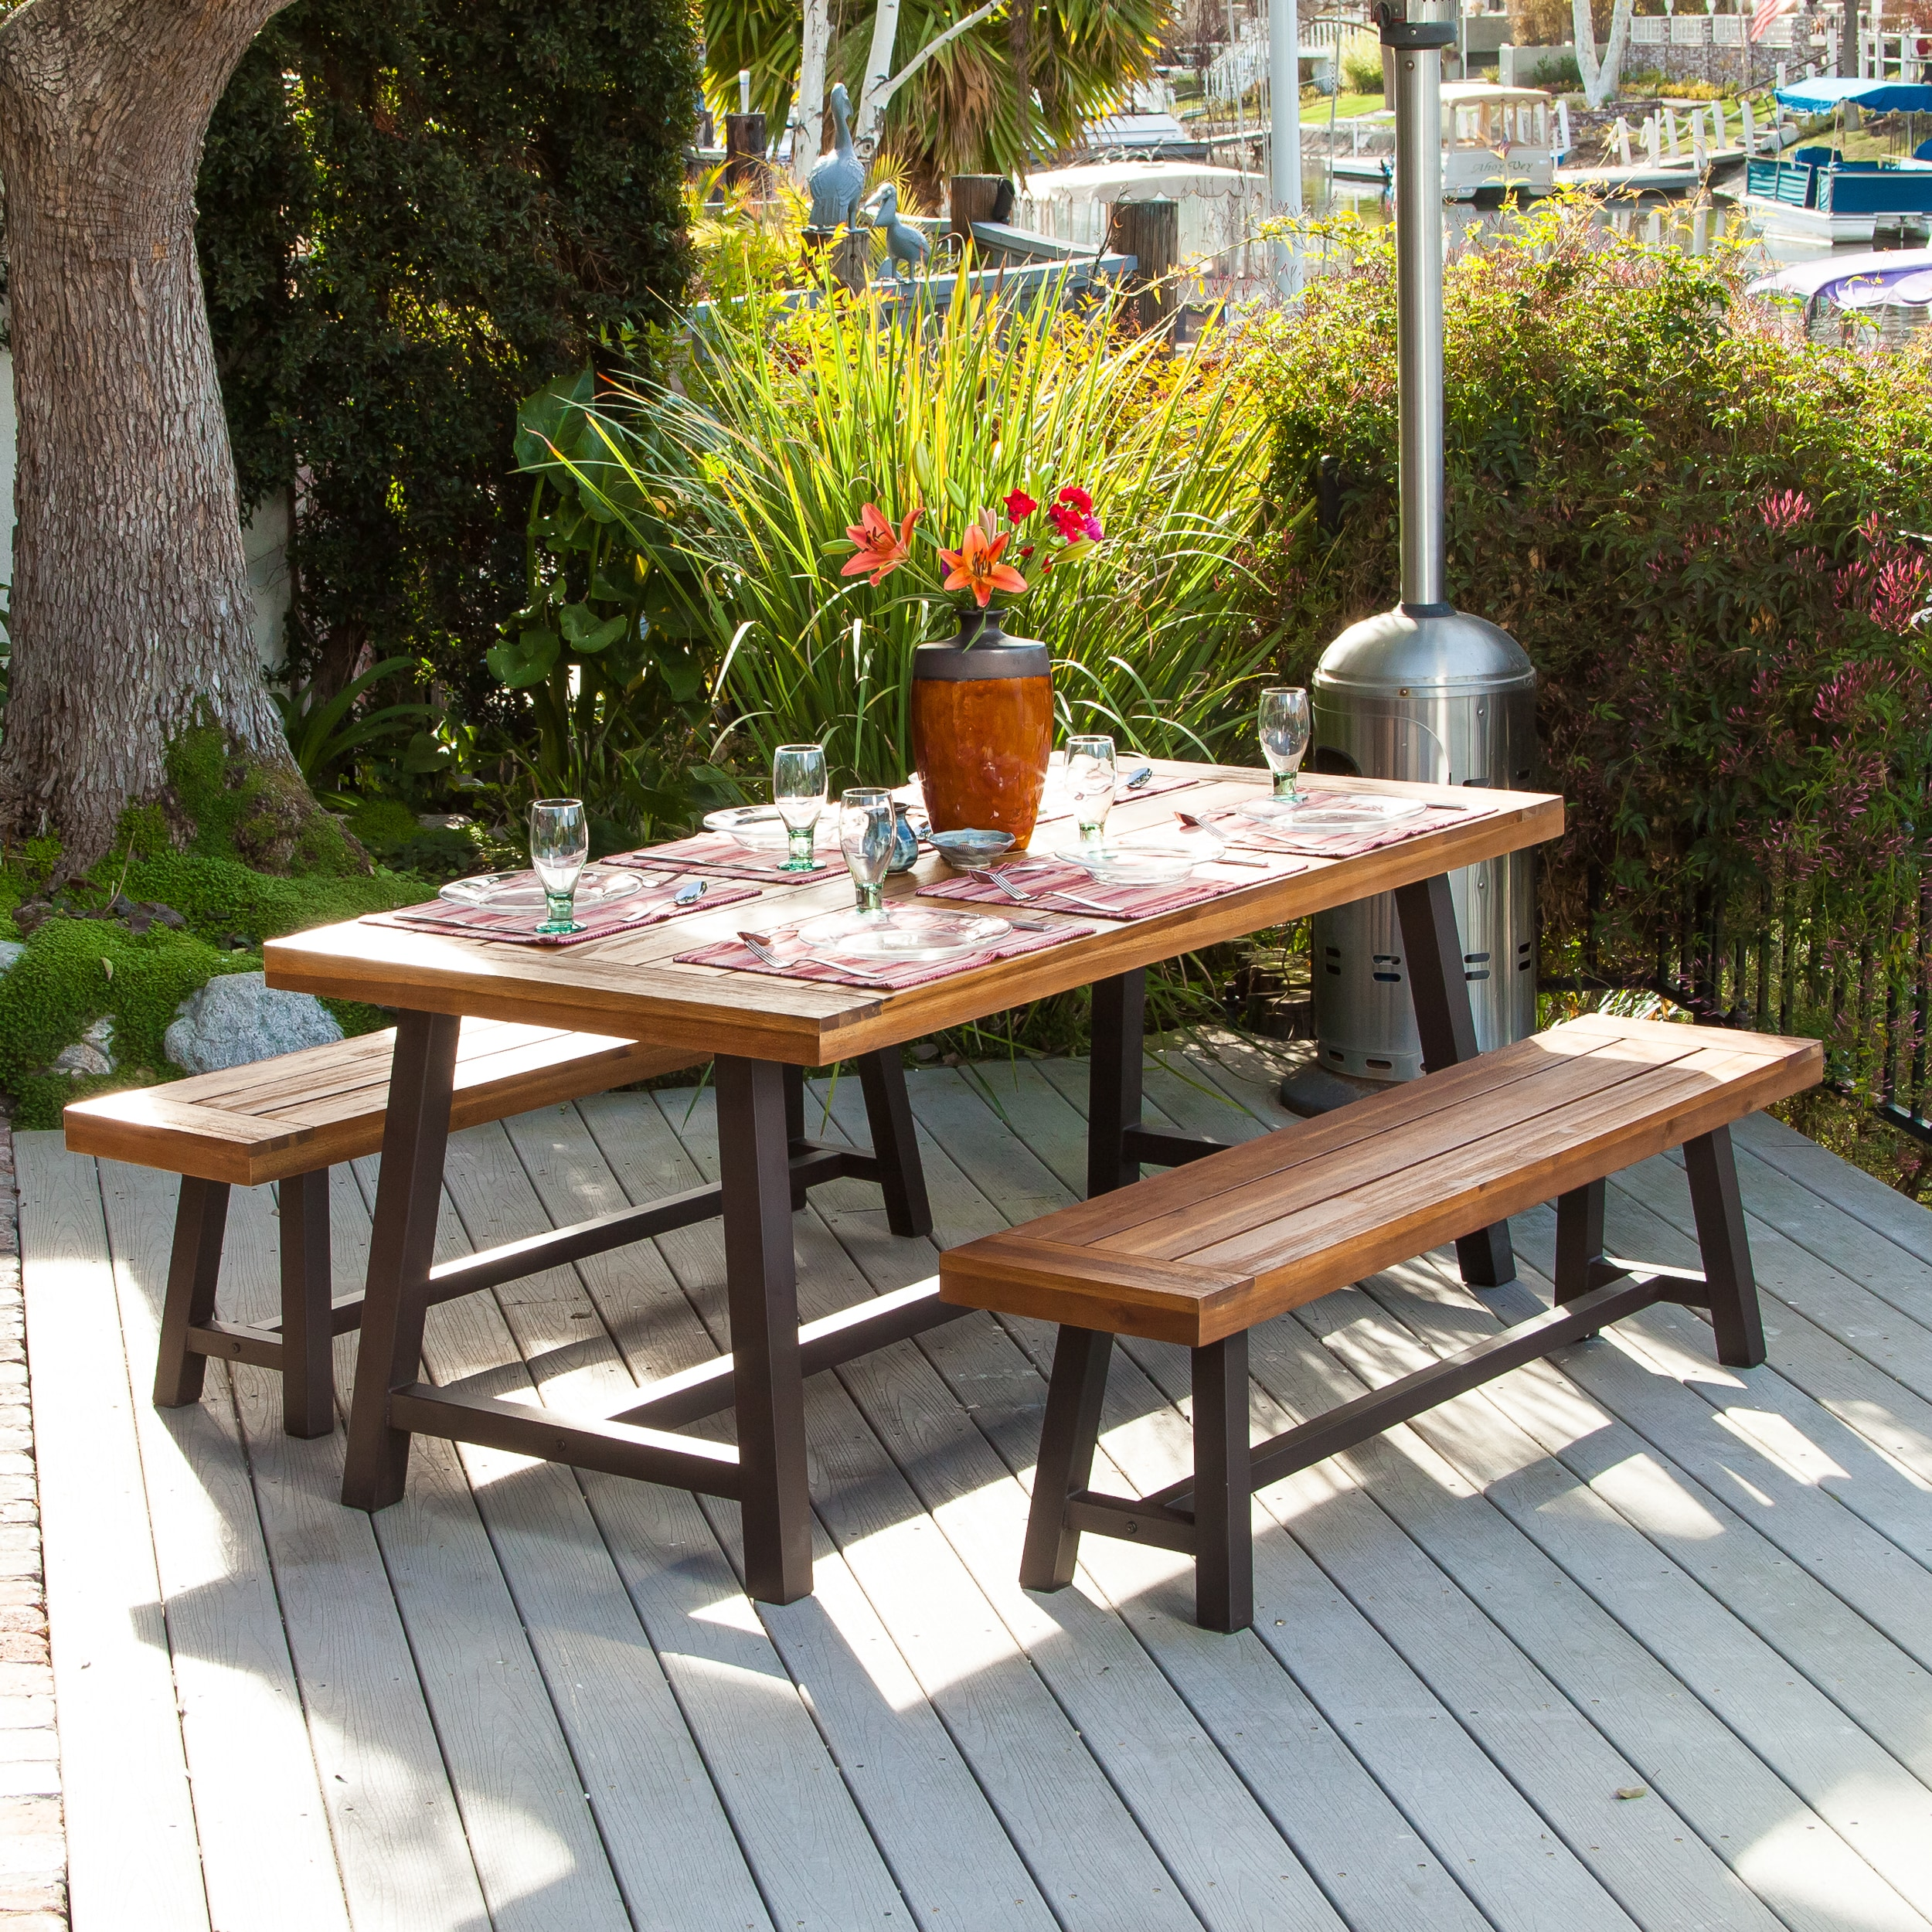 Carlisle Rustic Metal 3 Piece Outdoor Dining Set By Christopher Knight Home On Free Shipping Today 8830156